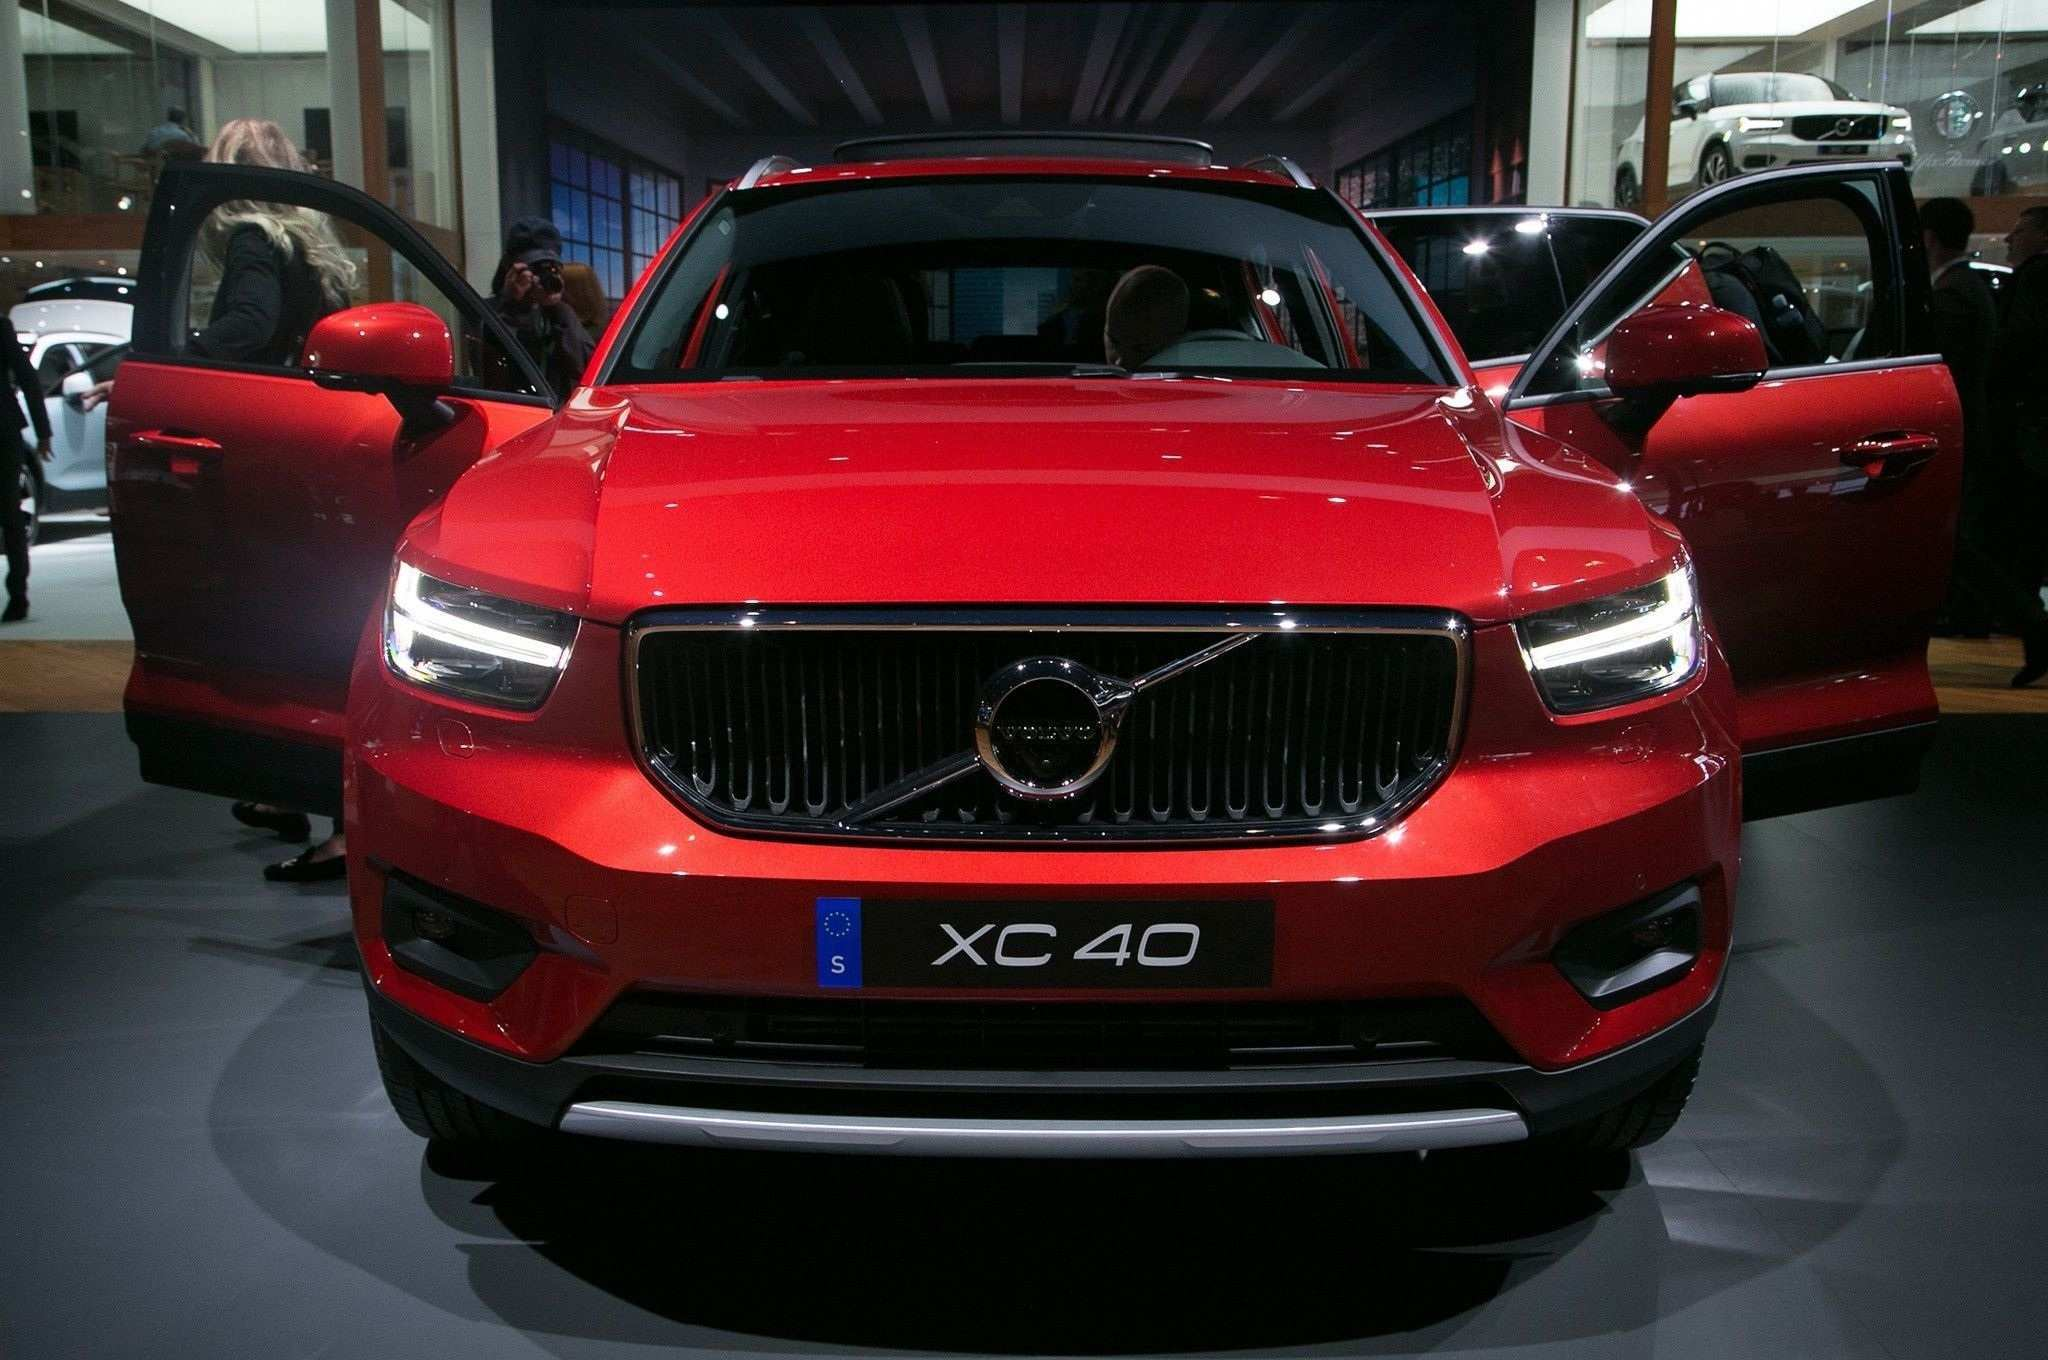 49 New Volvo Going Electric By 2020 History for Volvo Going Electric By 2020